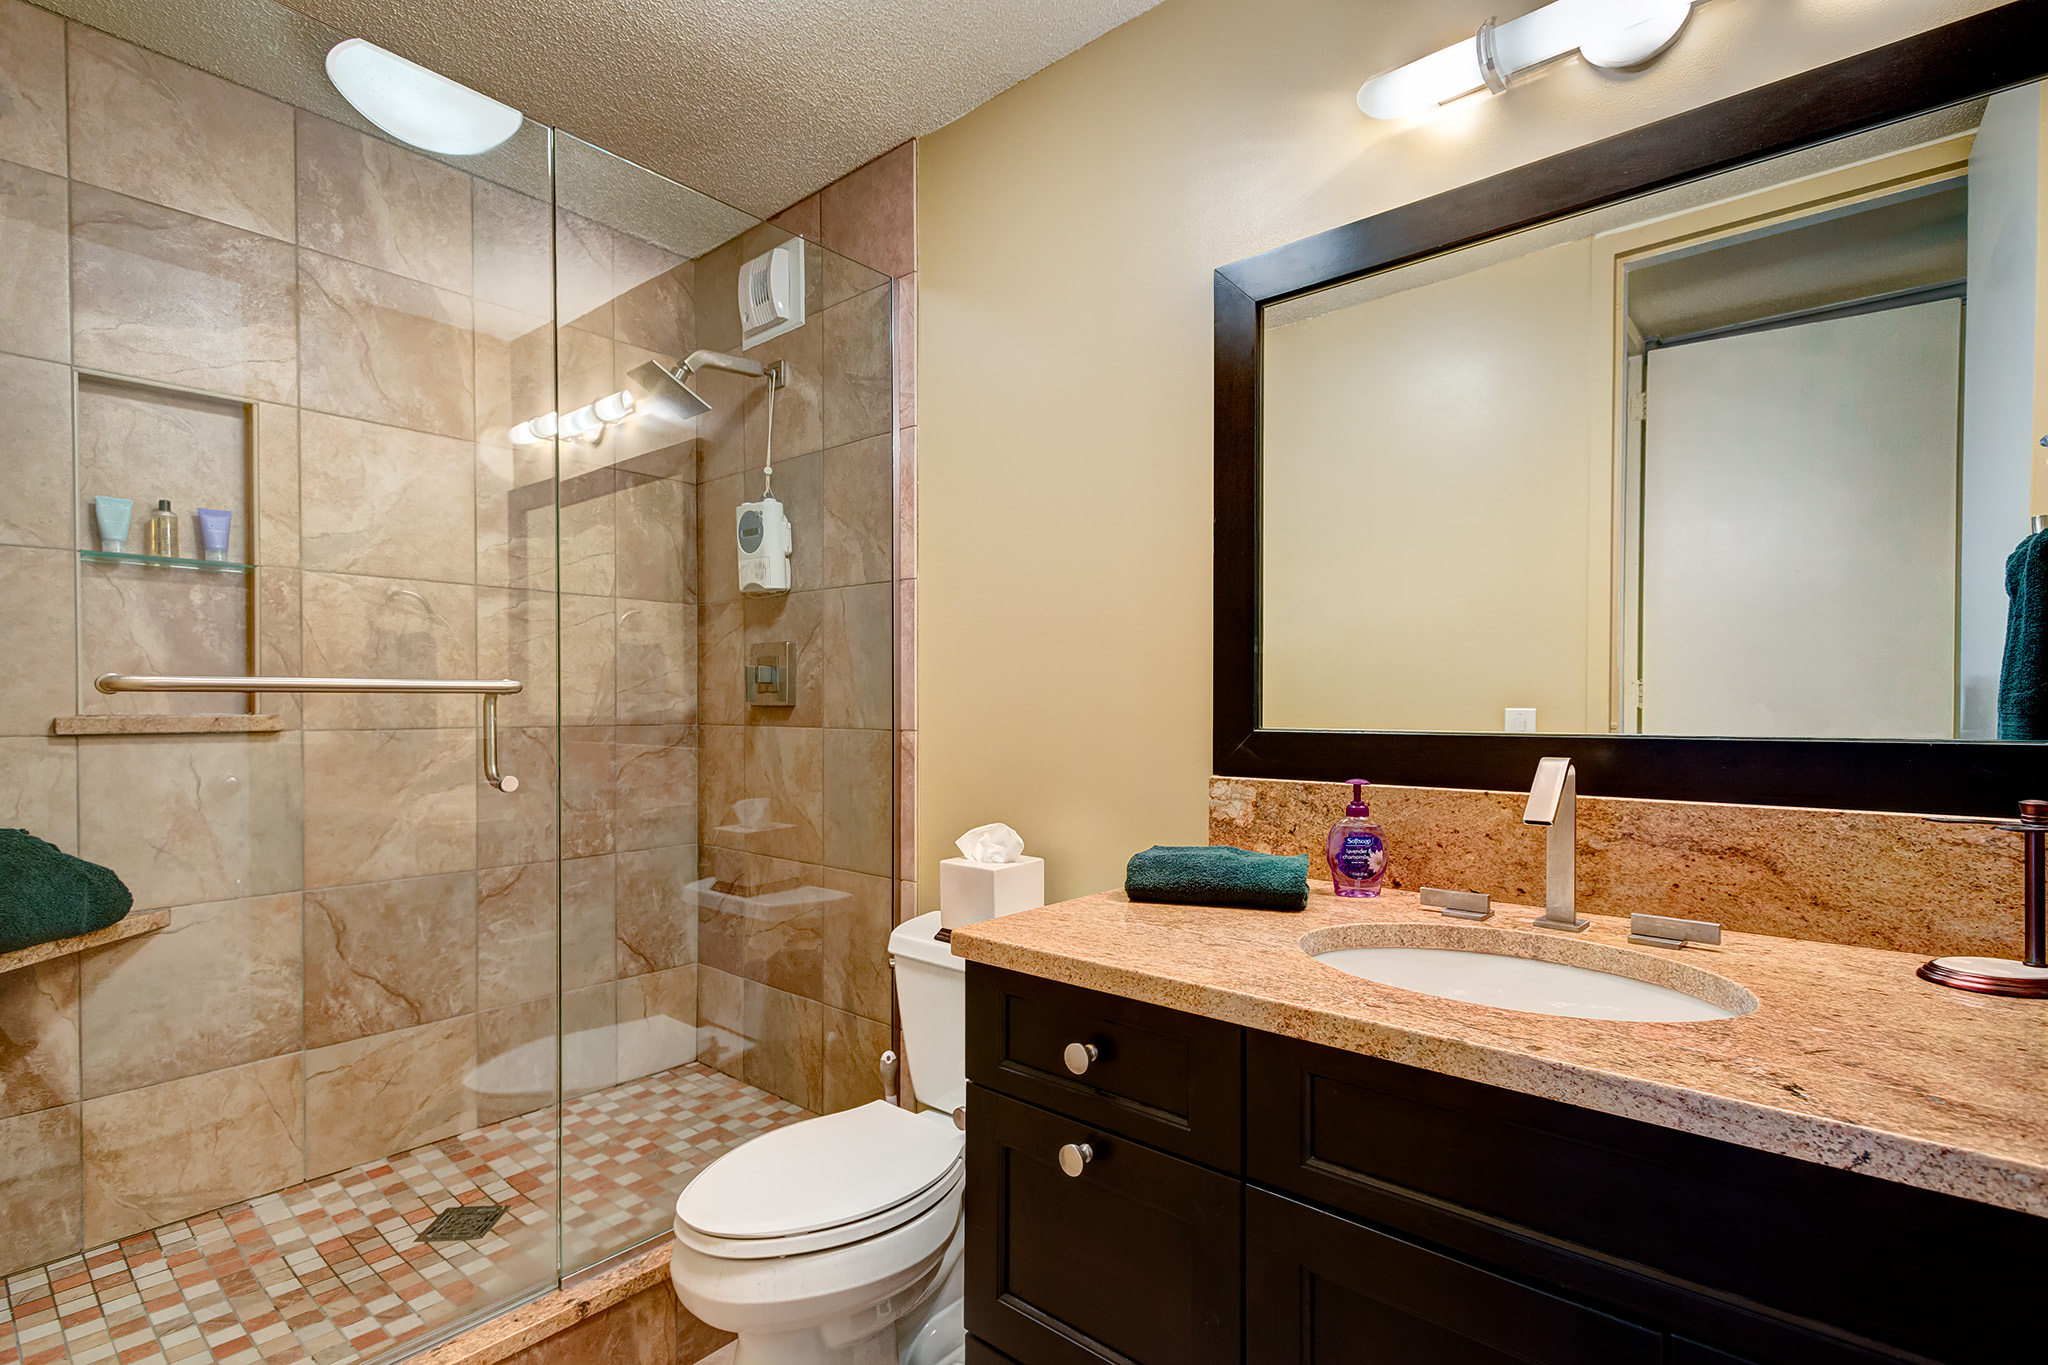 Bathroom Remodeling In Chicago Bathroom Renovation Project Chicago Il  Michael Menn Ltd .